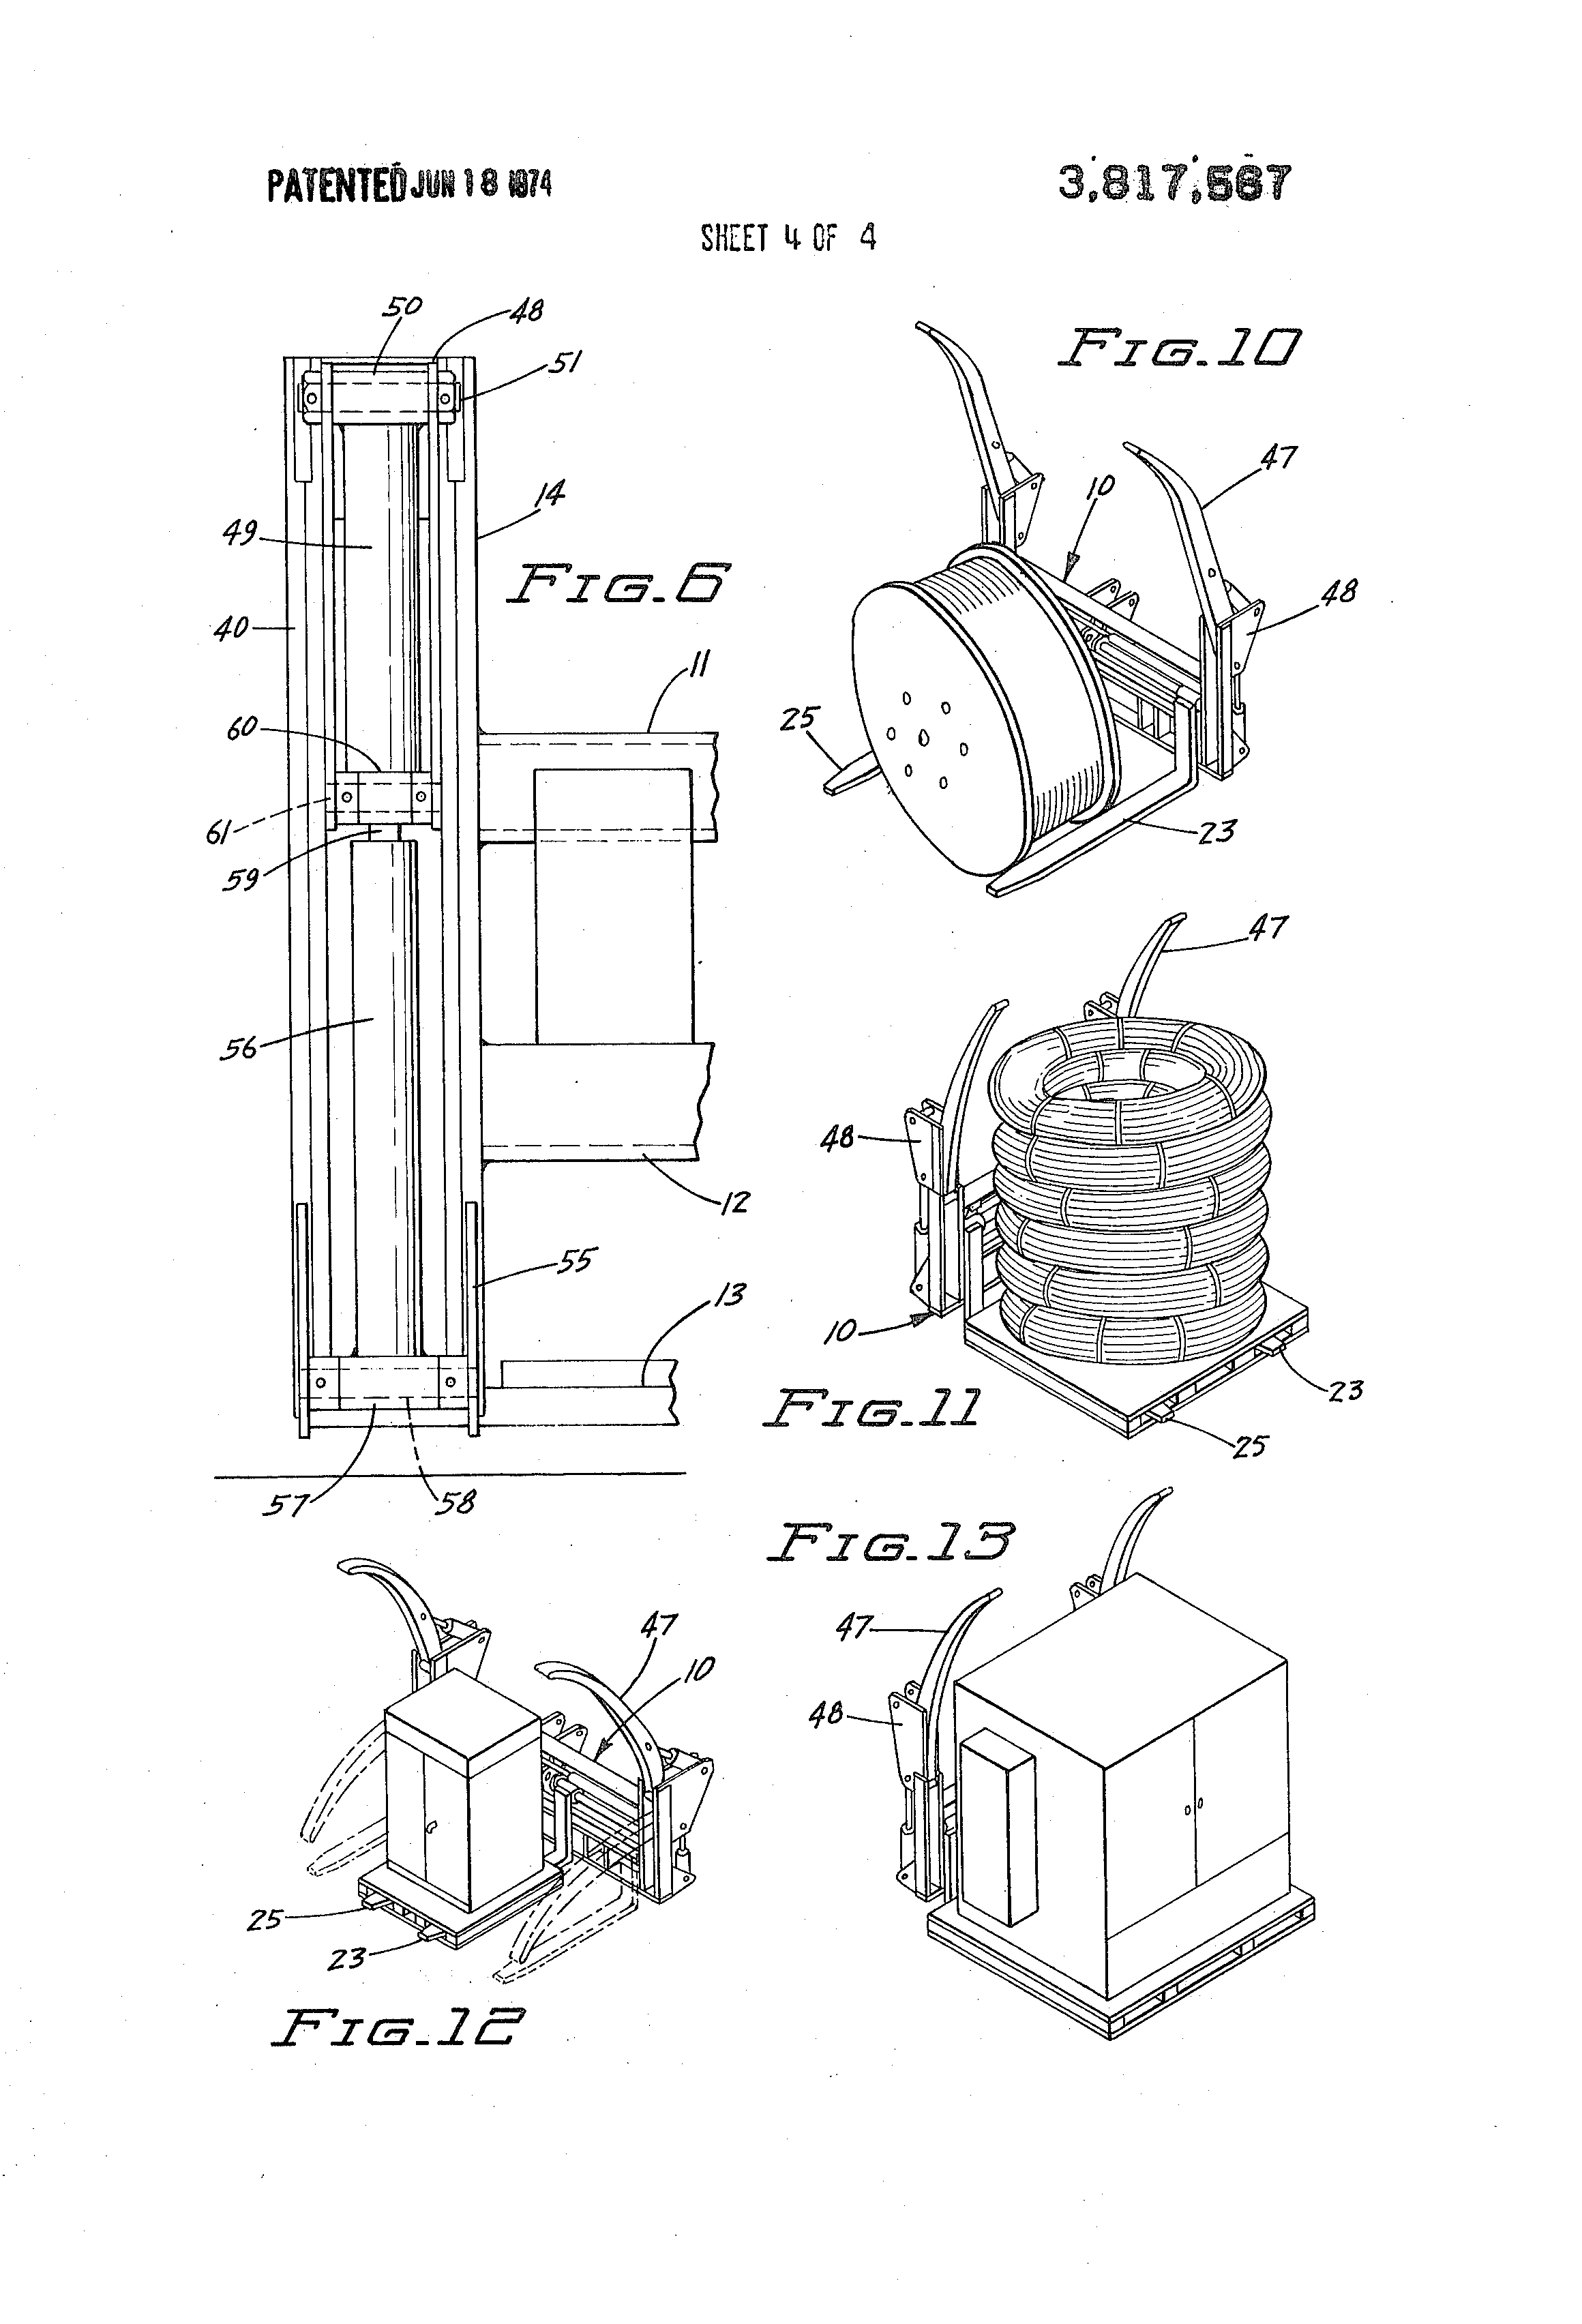 Deweze Wiring Diagram Patent Us3817567 Versatile Utility Carriage For Mobile Loaders Drawing